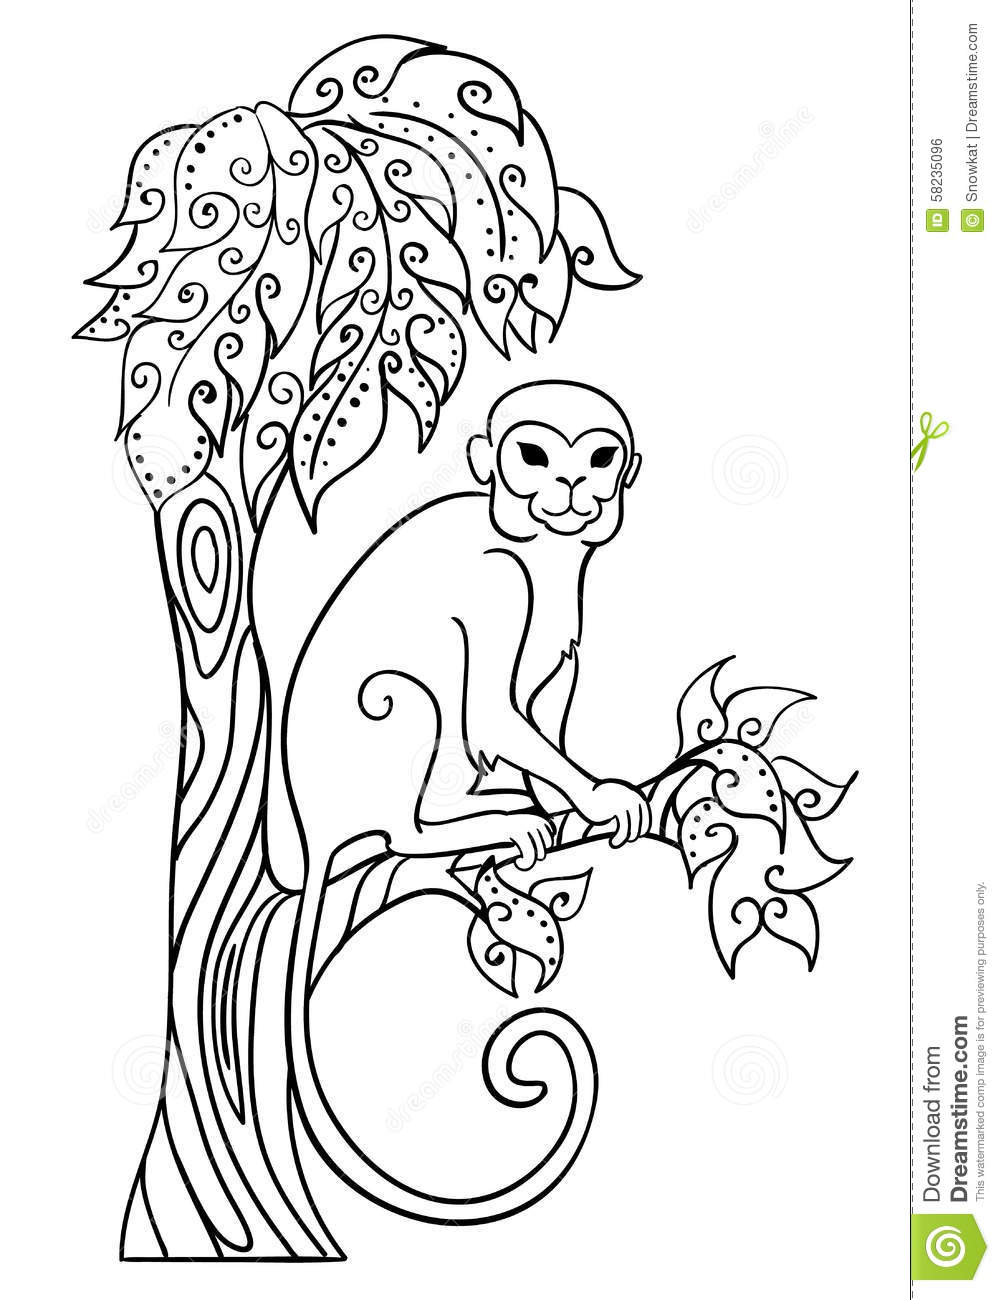 Monkey sitting on a tree. stock vector. Illustration of contour ... for Line Drawing Monkey  75tgx